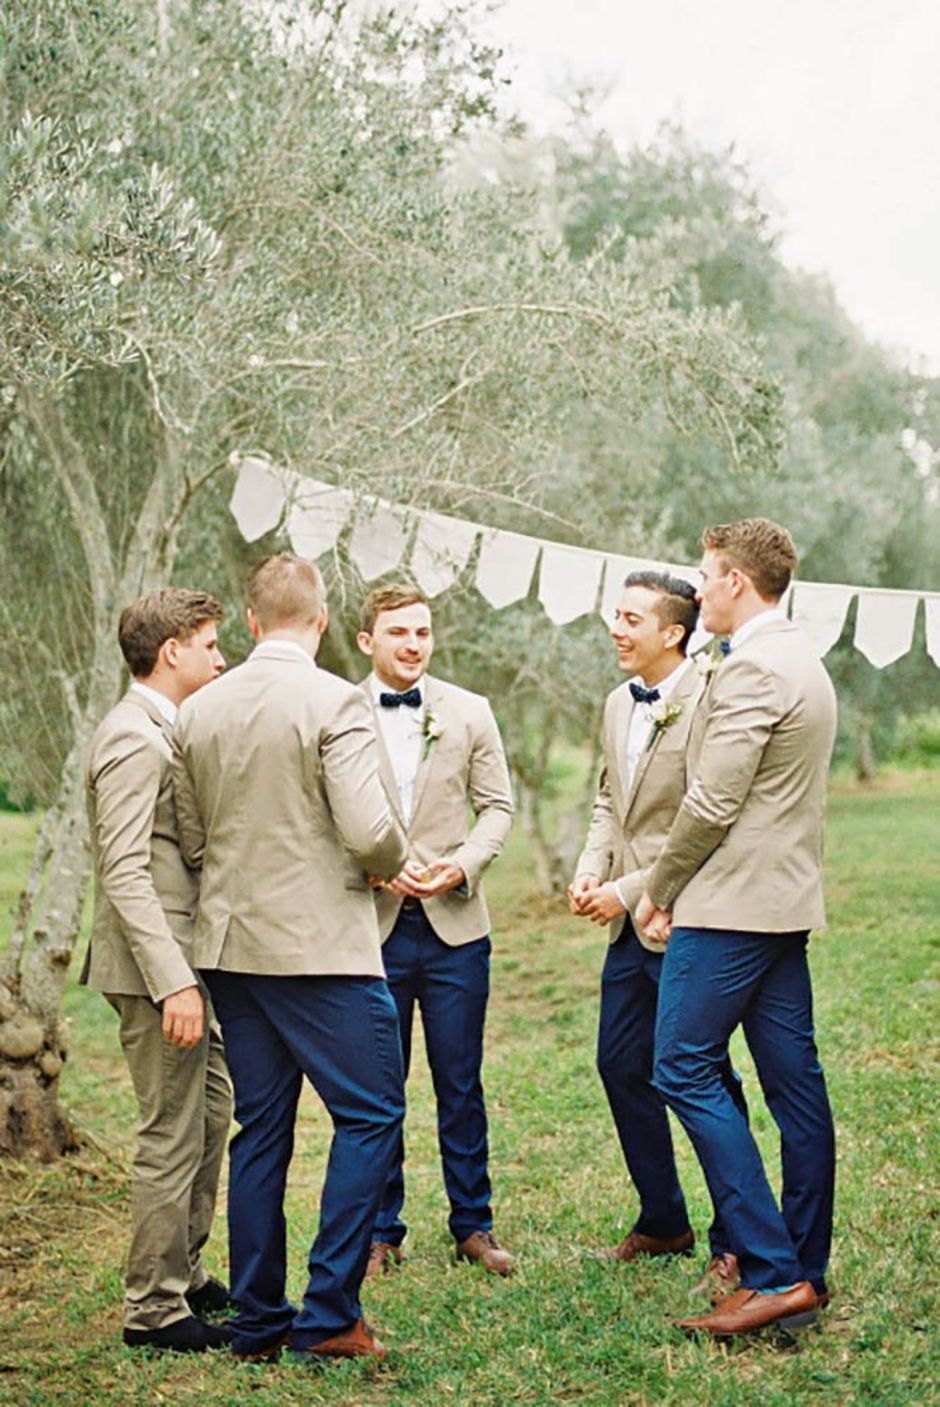 100+ Groomsmen Photos Poses Ideas You Can't Miss 52